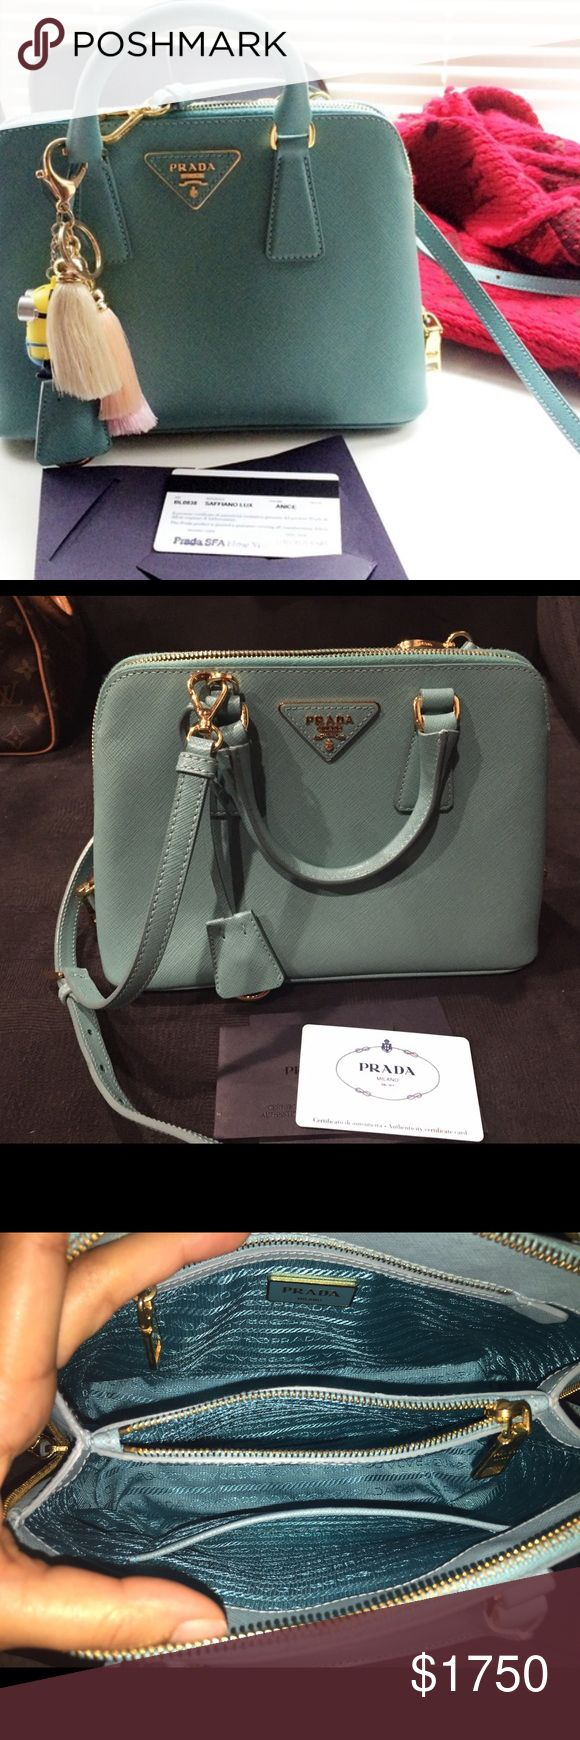 PRADA saffiano promenade small Promenade cross body in excellent condition. No damages perfect condition. I can provide additional pictures comes with authenticity card and dust bag. Please ask any questions will consider reasonable offers. NO TRADES. PRADA Bags